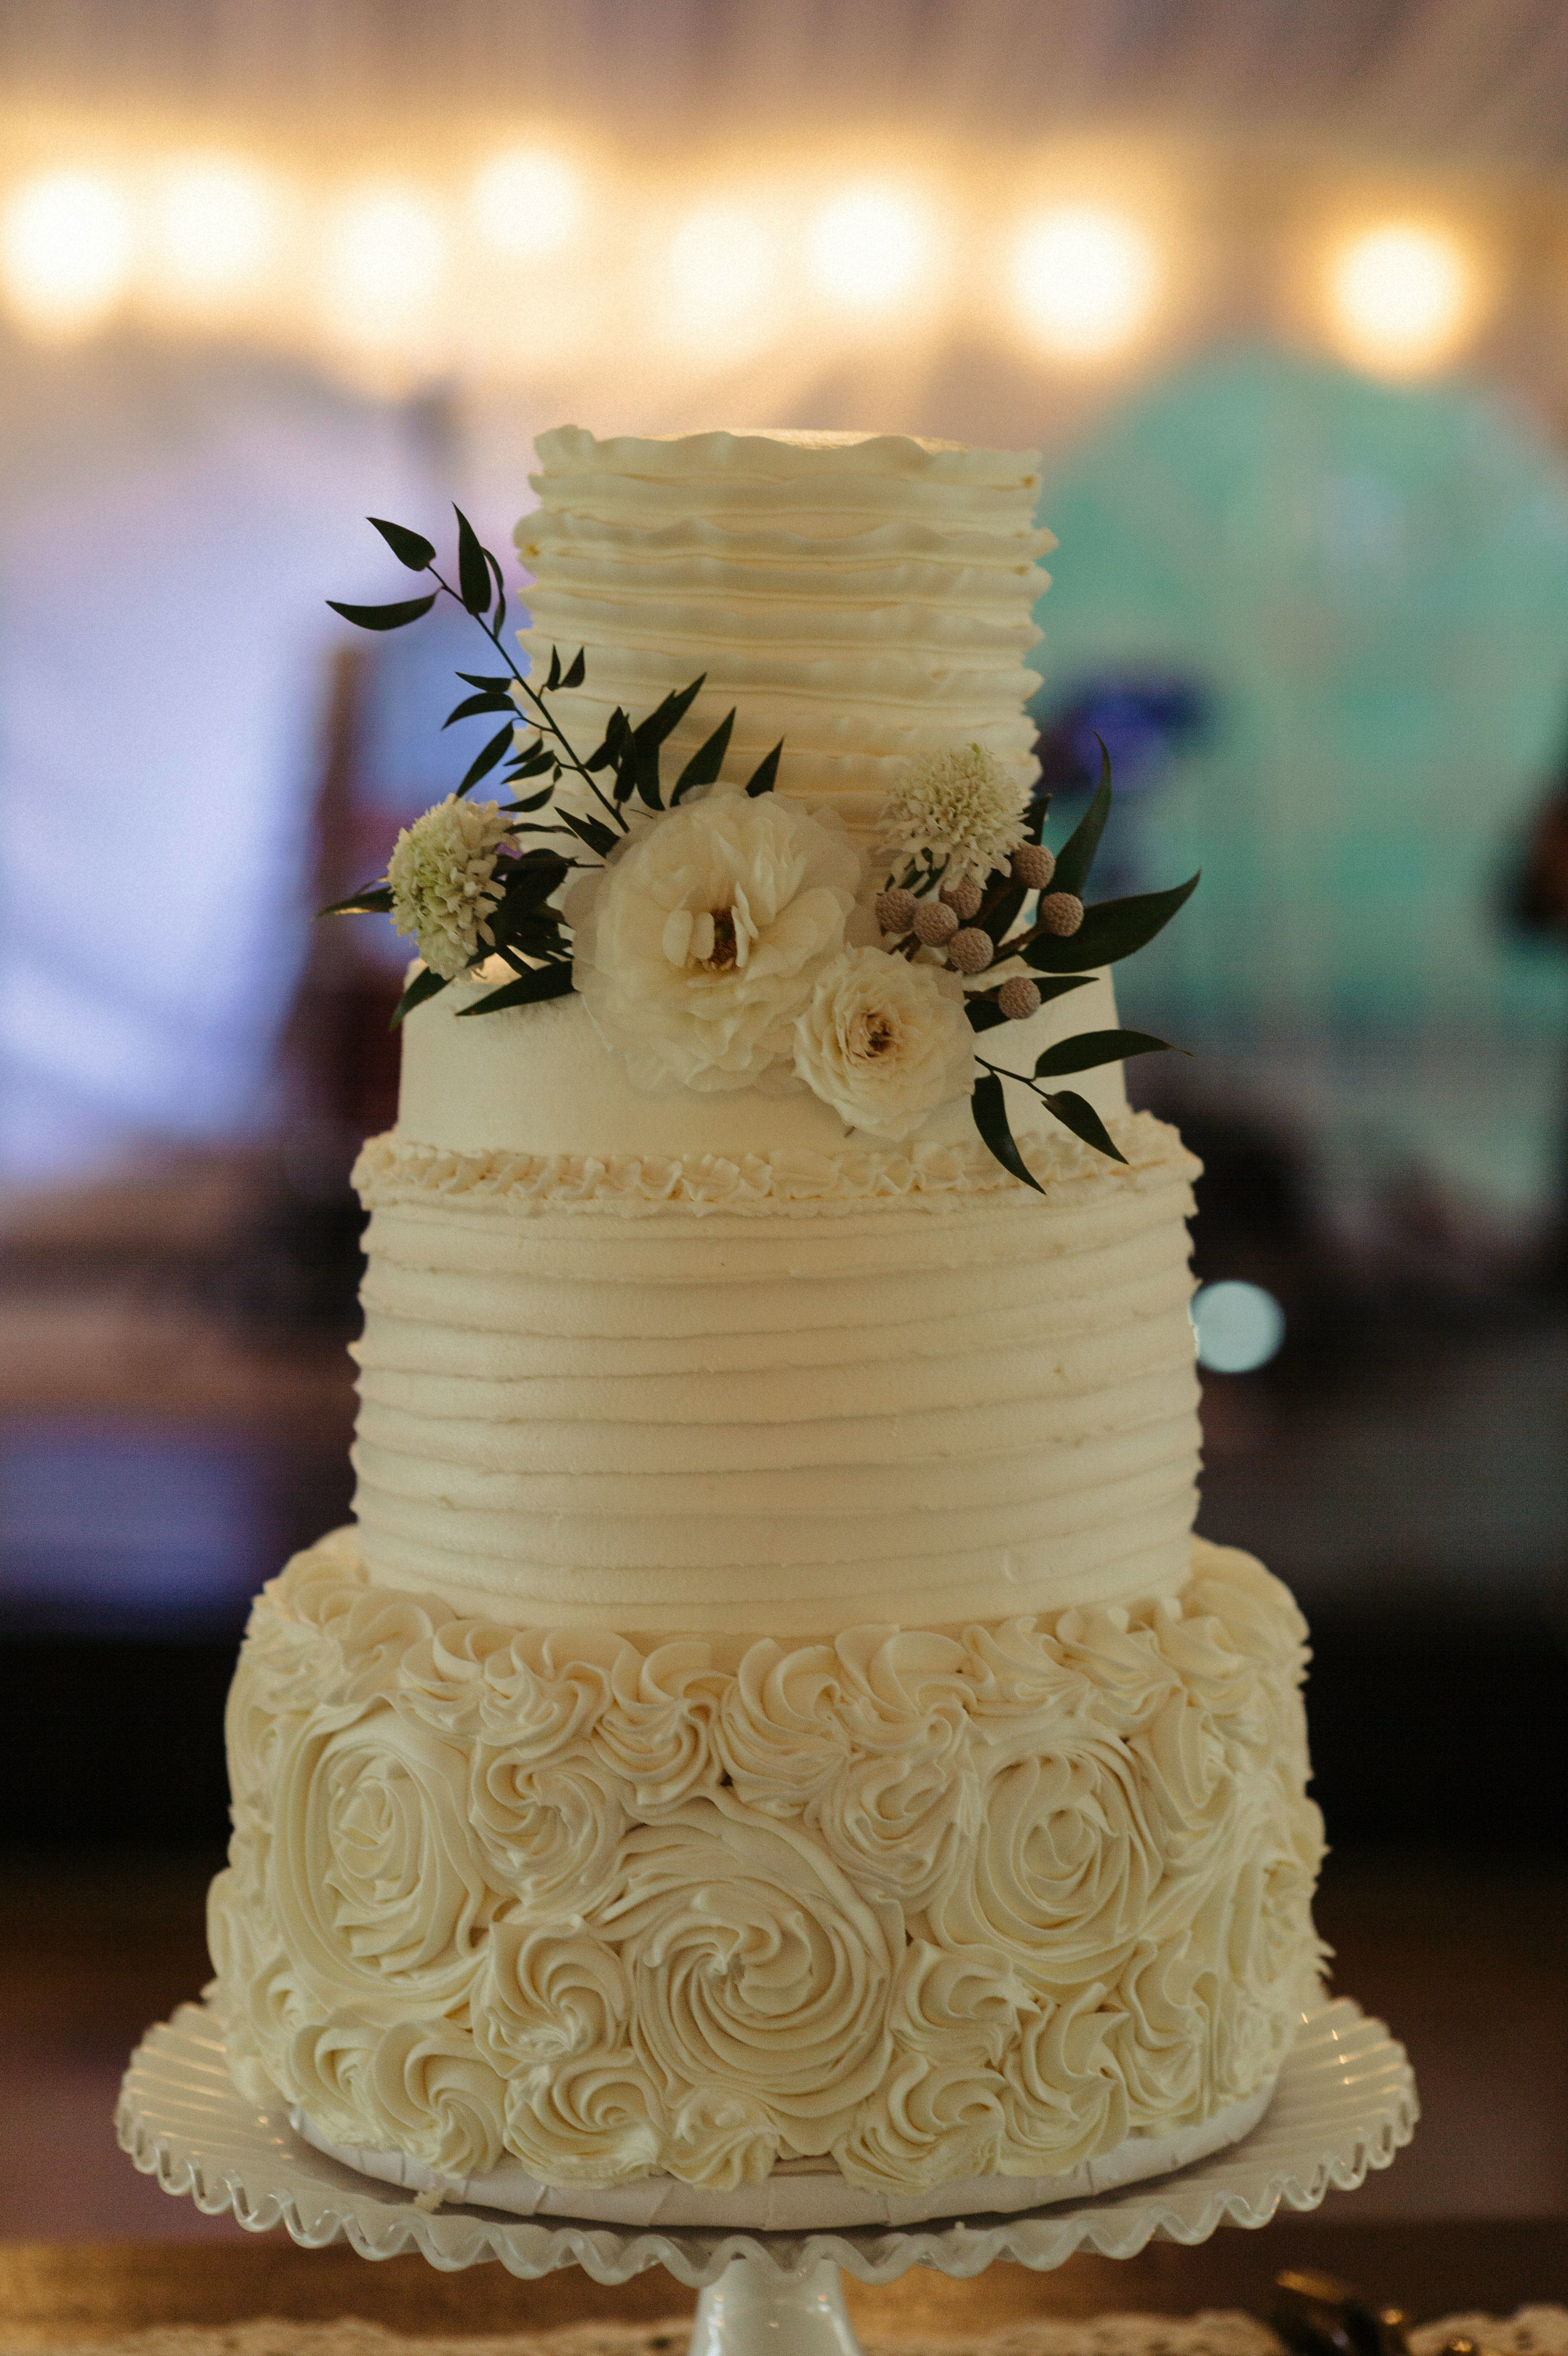 Southern Fete, Southern Wedding, Guidry's Cake Shop, Bride's cake